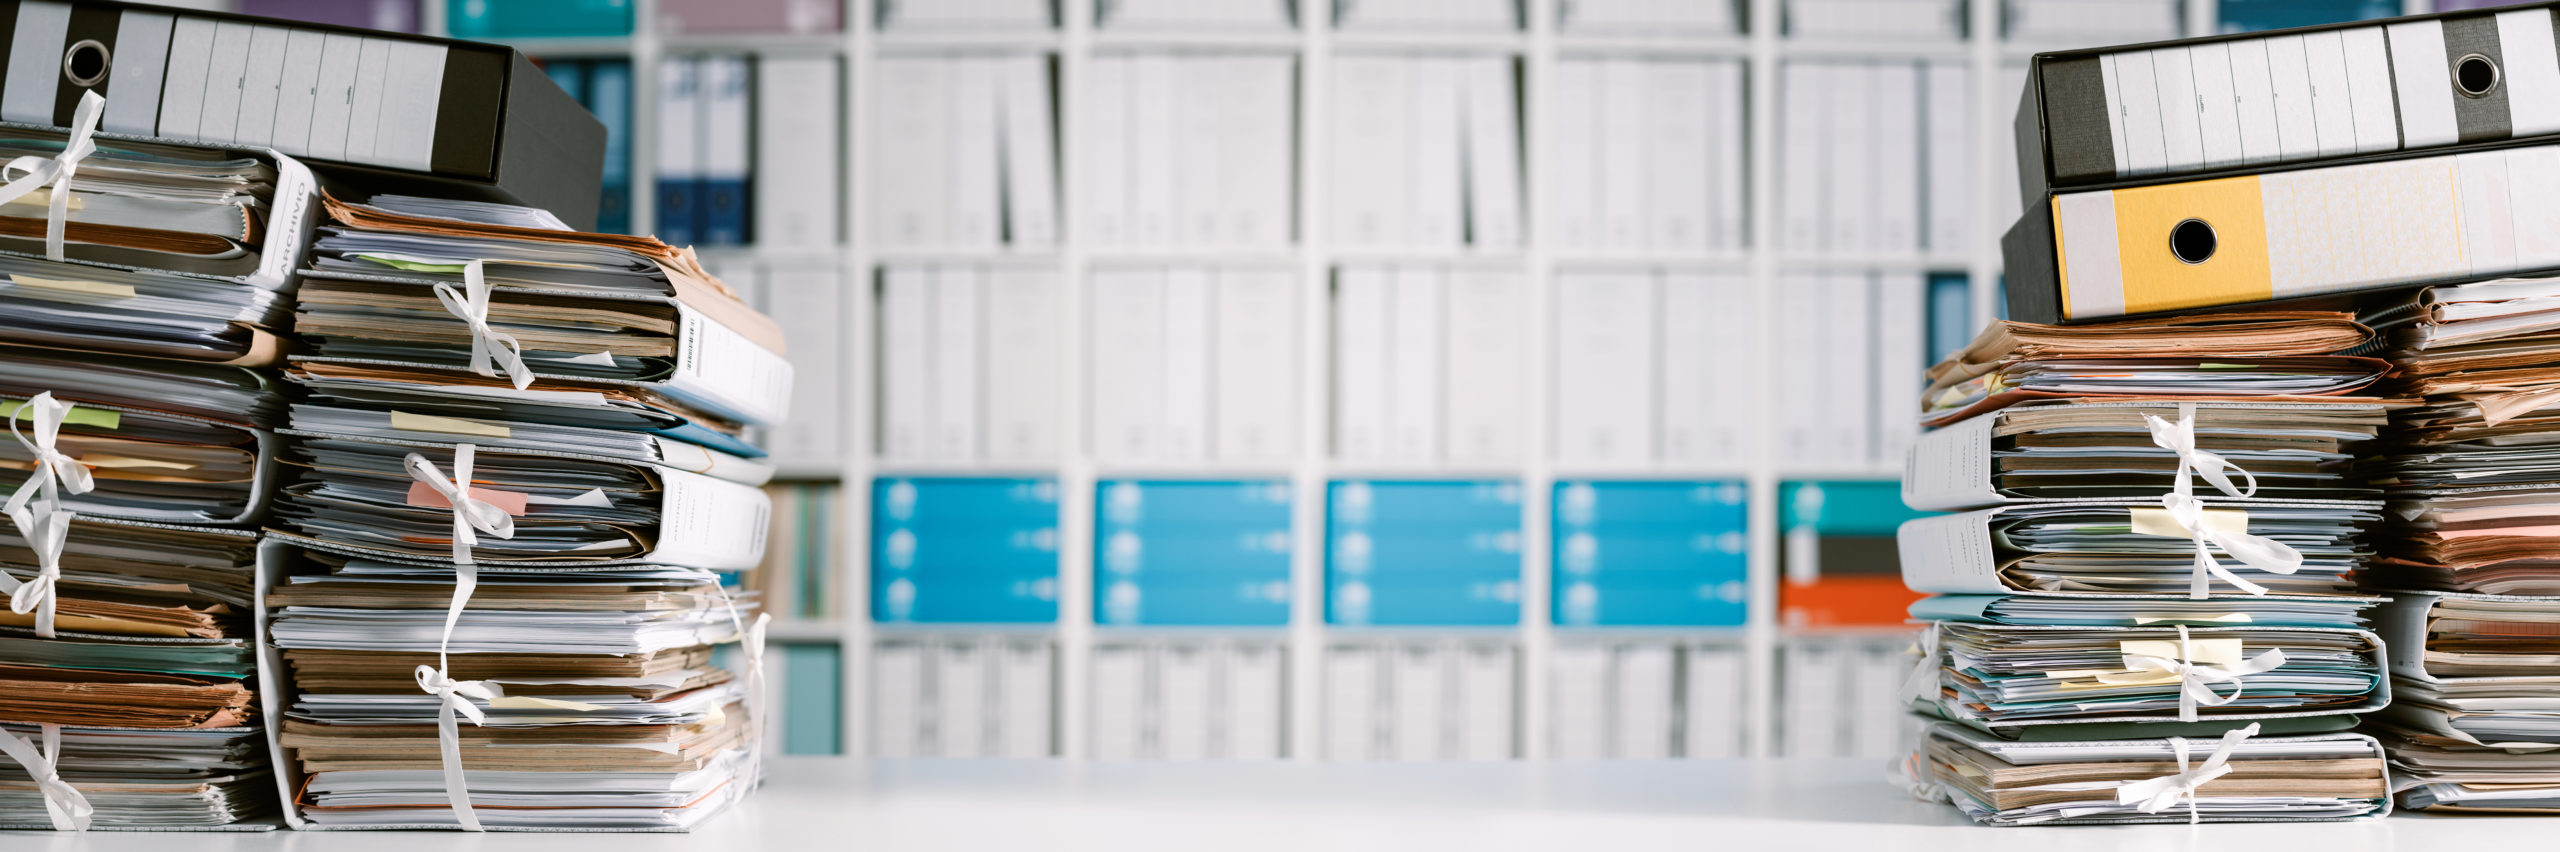 Stacks of files and paperwork in the office and bookshelves on the background: management and archive concept - Image